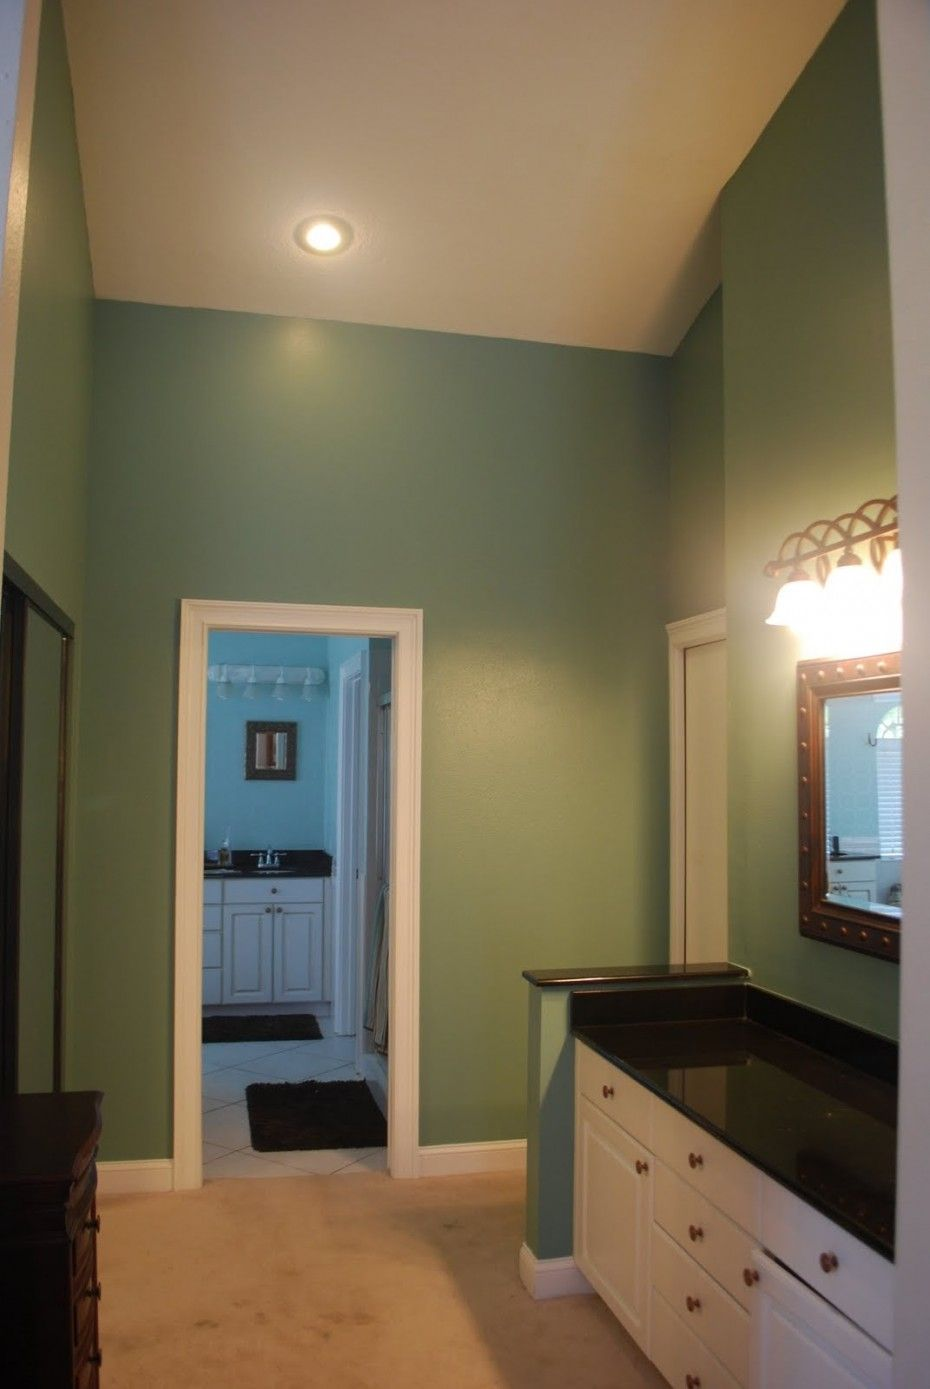 Bathroom paint colors ideas warm green bathroom painting for Paint bathroom ideas color